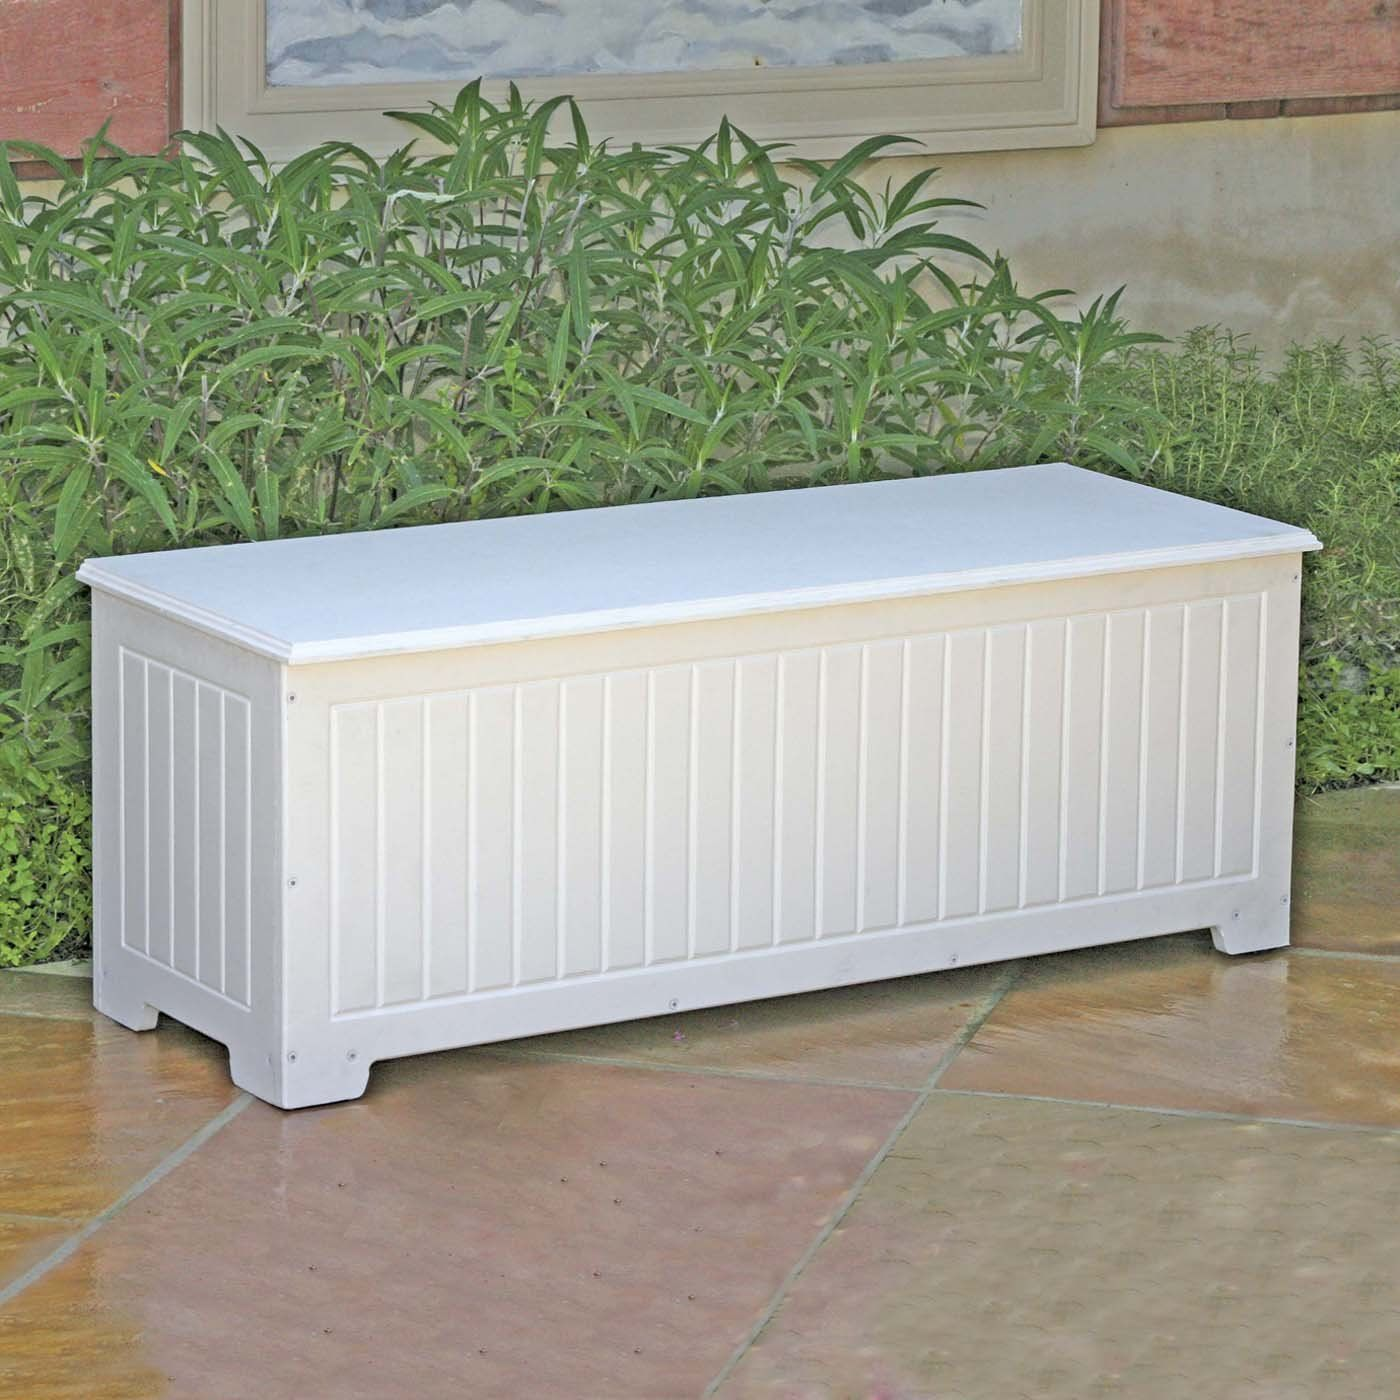 Storage Boxes Sydney Eagle One C39548b Sydney Flat Top Deck Outdoor Storage Box Atg